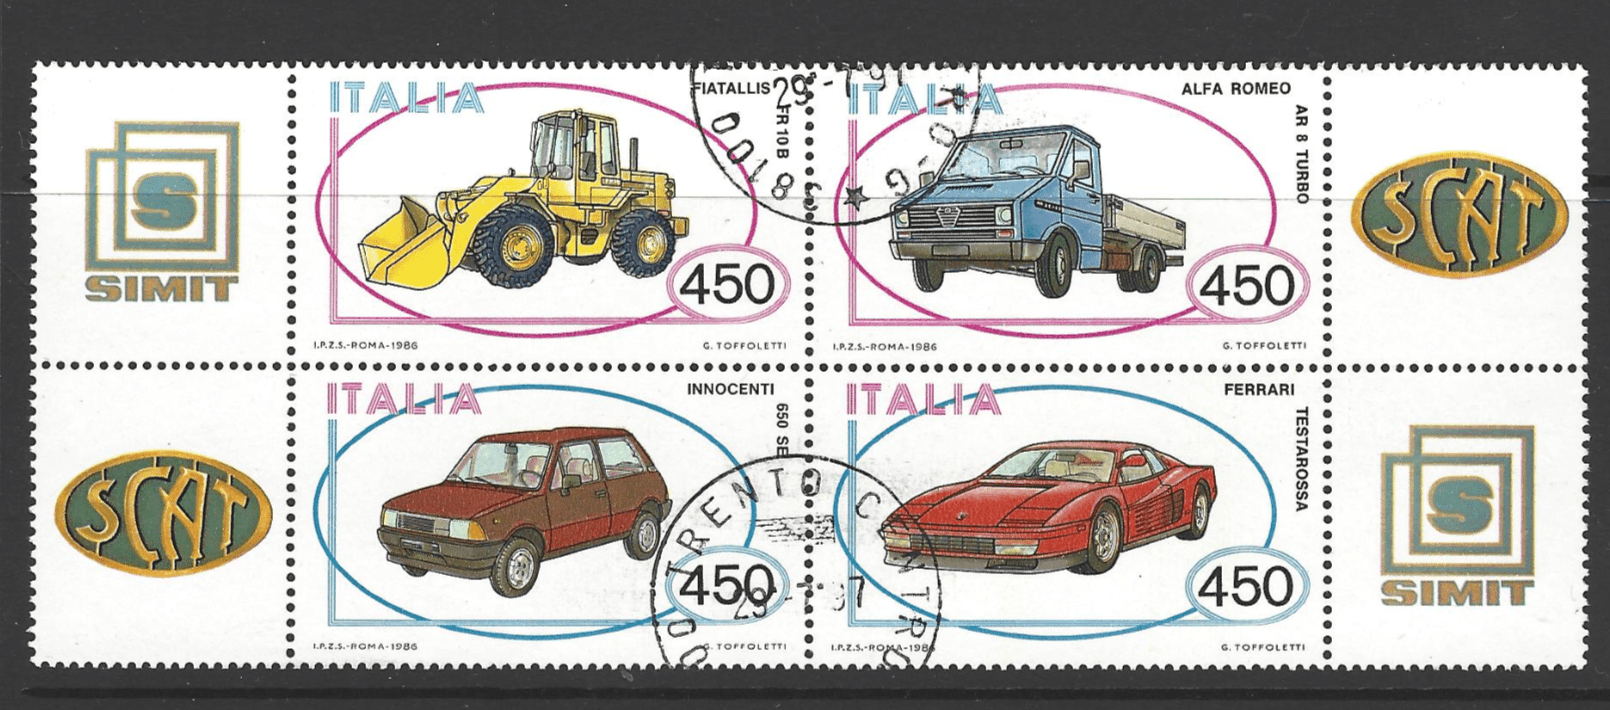 SG 1933a, Italy Stamps, Car Stamps, Transport Stamps